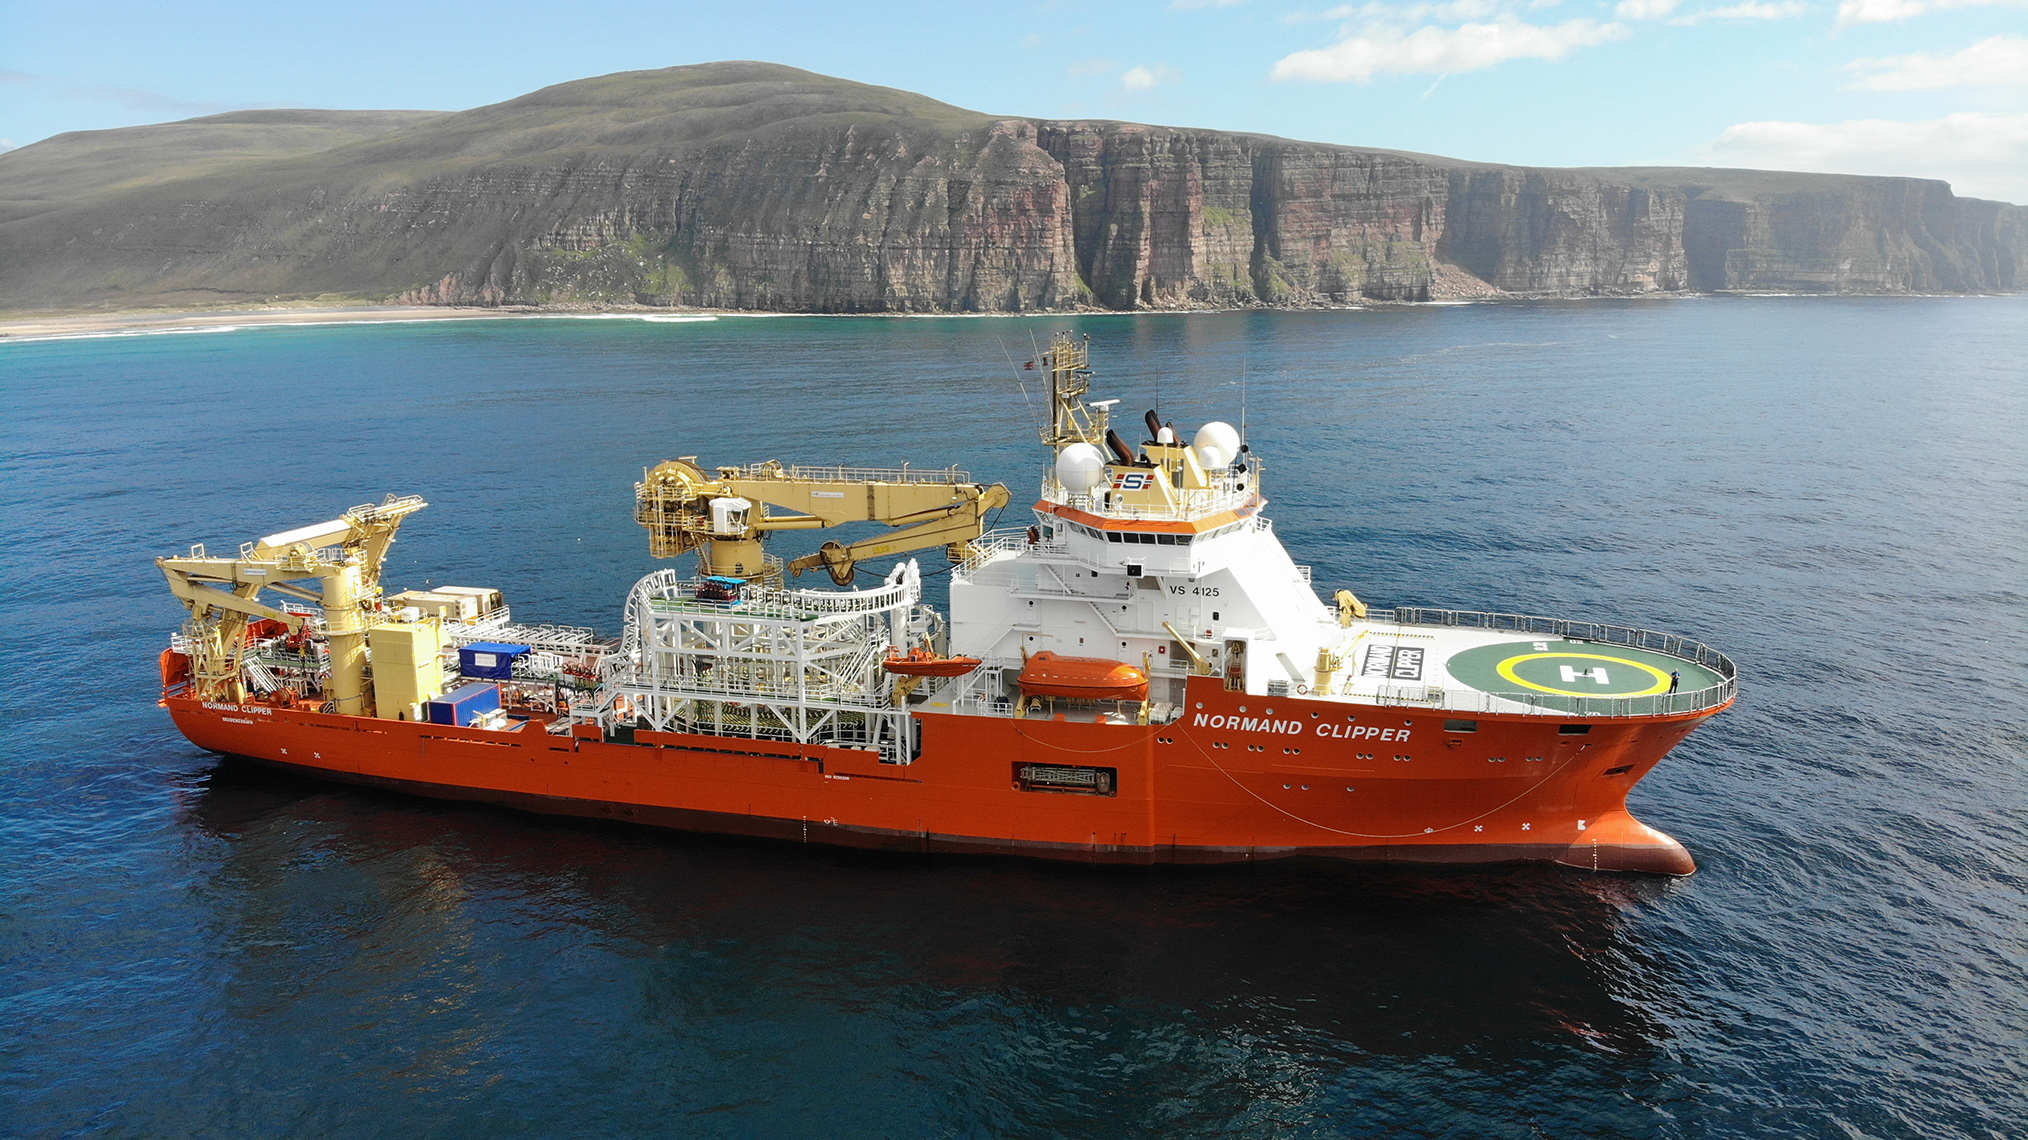 The Normand Clipper has been working in Rackwick Bay to install the new cable.